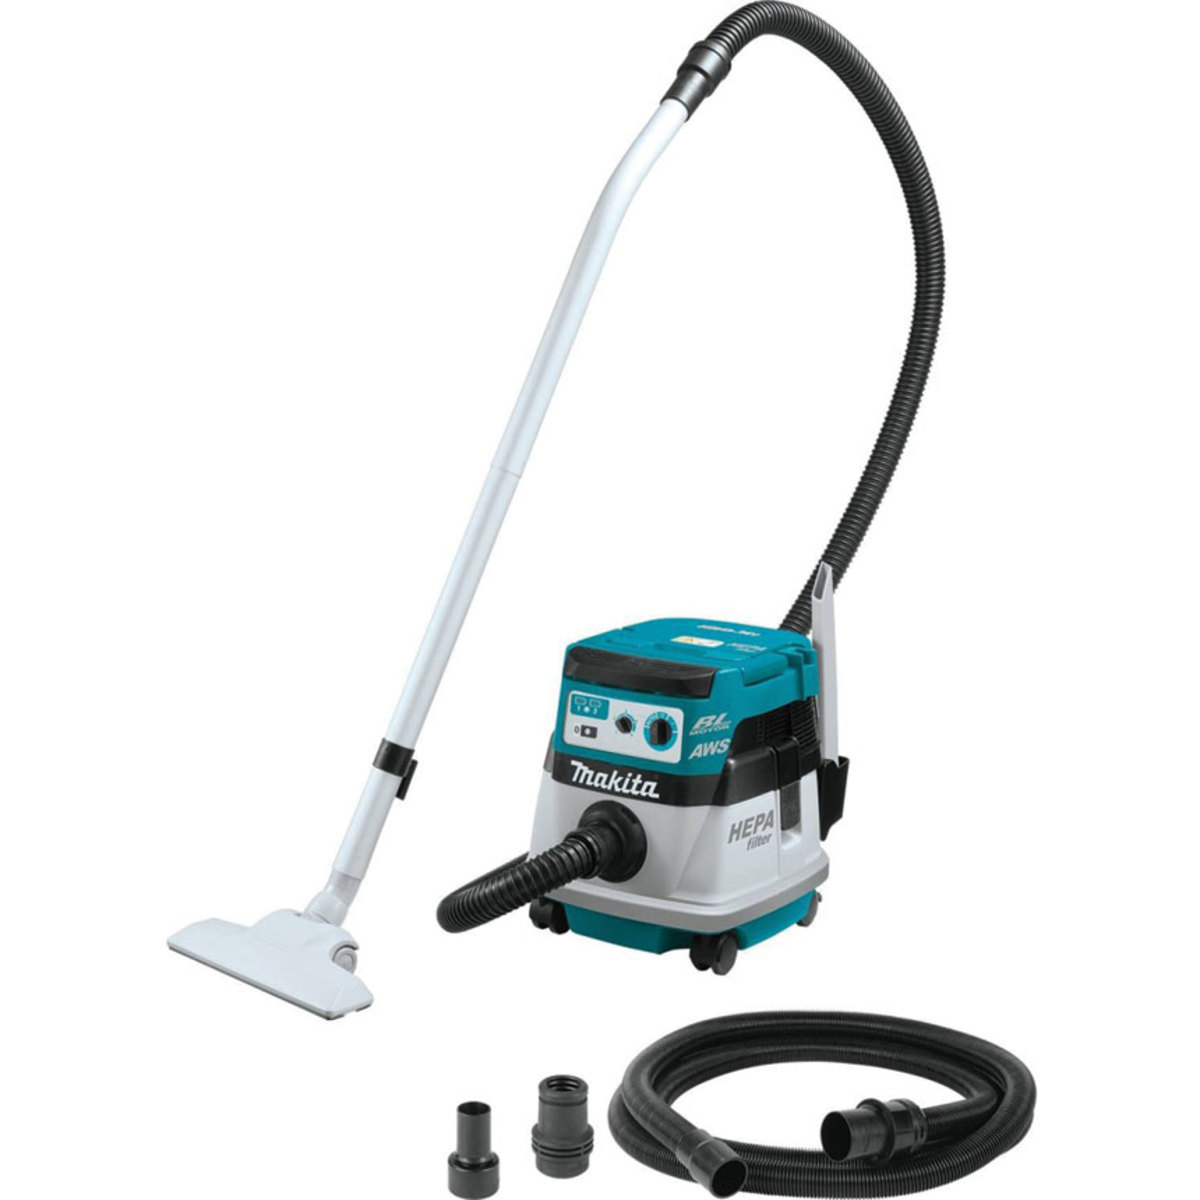 Makita's dry dust extractor, model XCV08Z